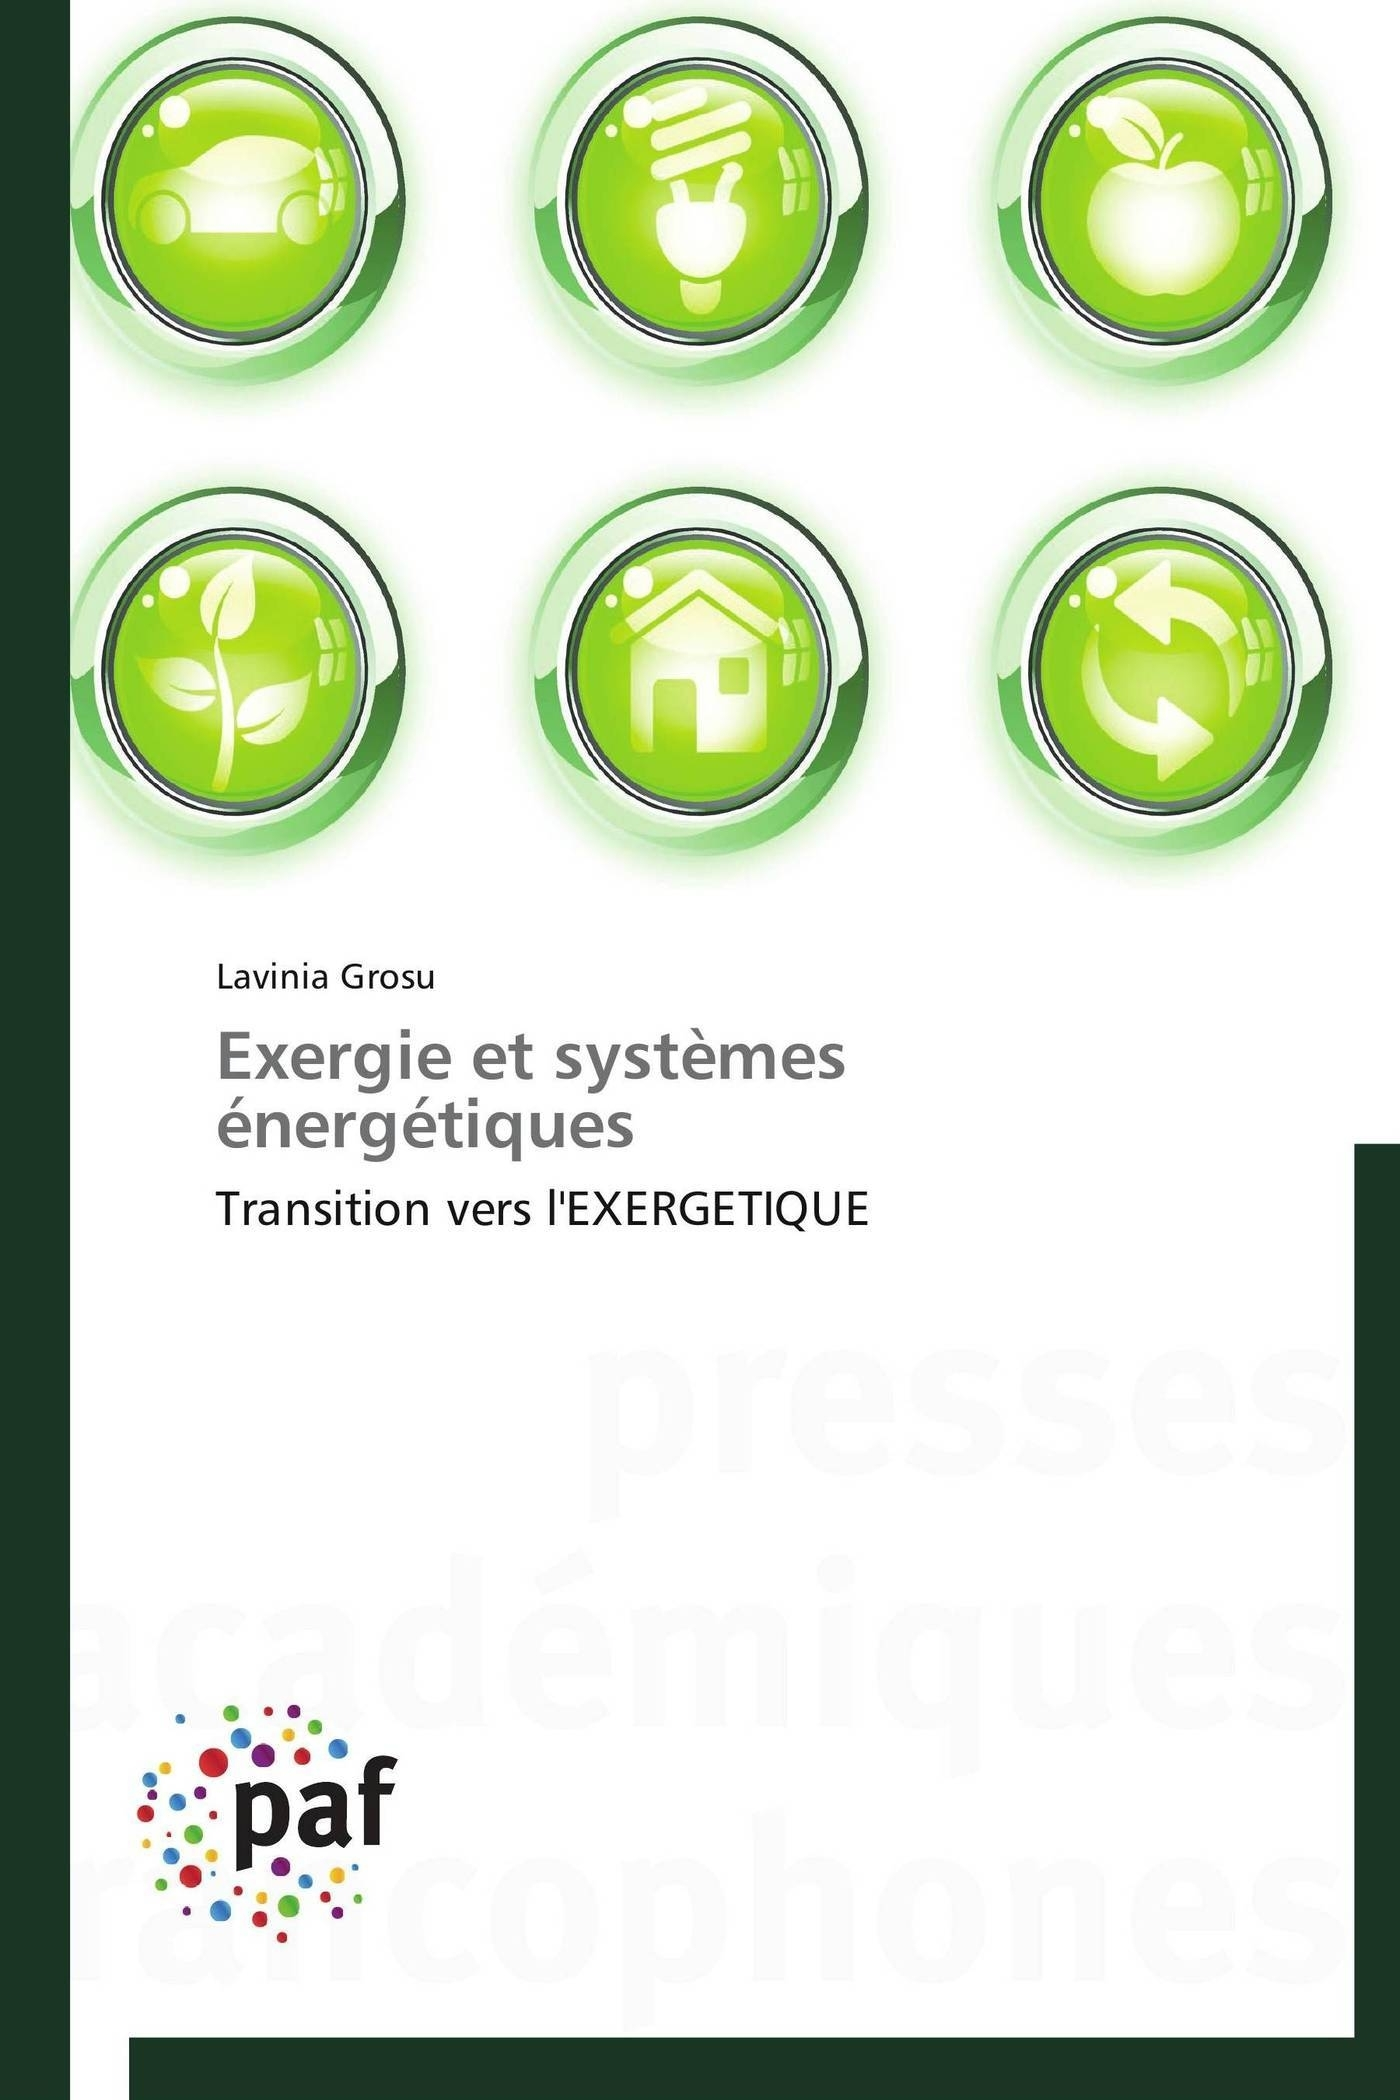 EXERGIE ET SYSTEMES ENERGETIQUES